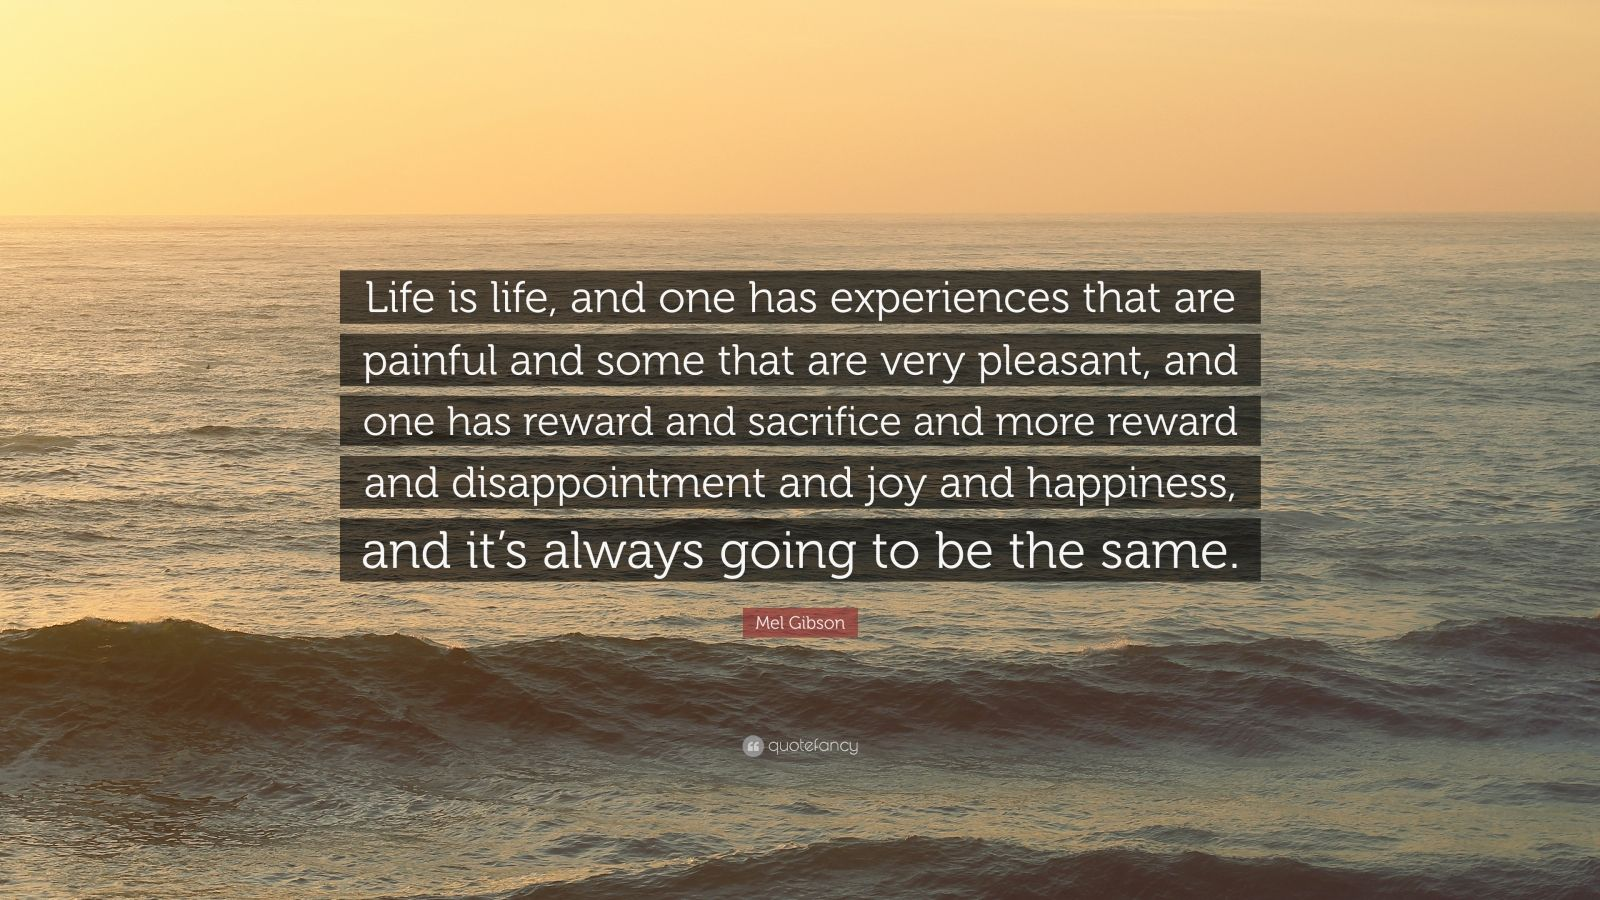 "Mel Gibson Quote: ""Life is life, and one has experiences that are painful and some that are very pleasant, and one has reward and sacrifice and more reward and disappointment and joy and happiness, and it's always going to be the same."""